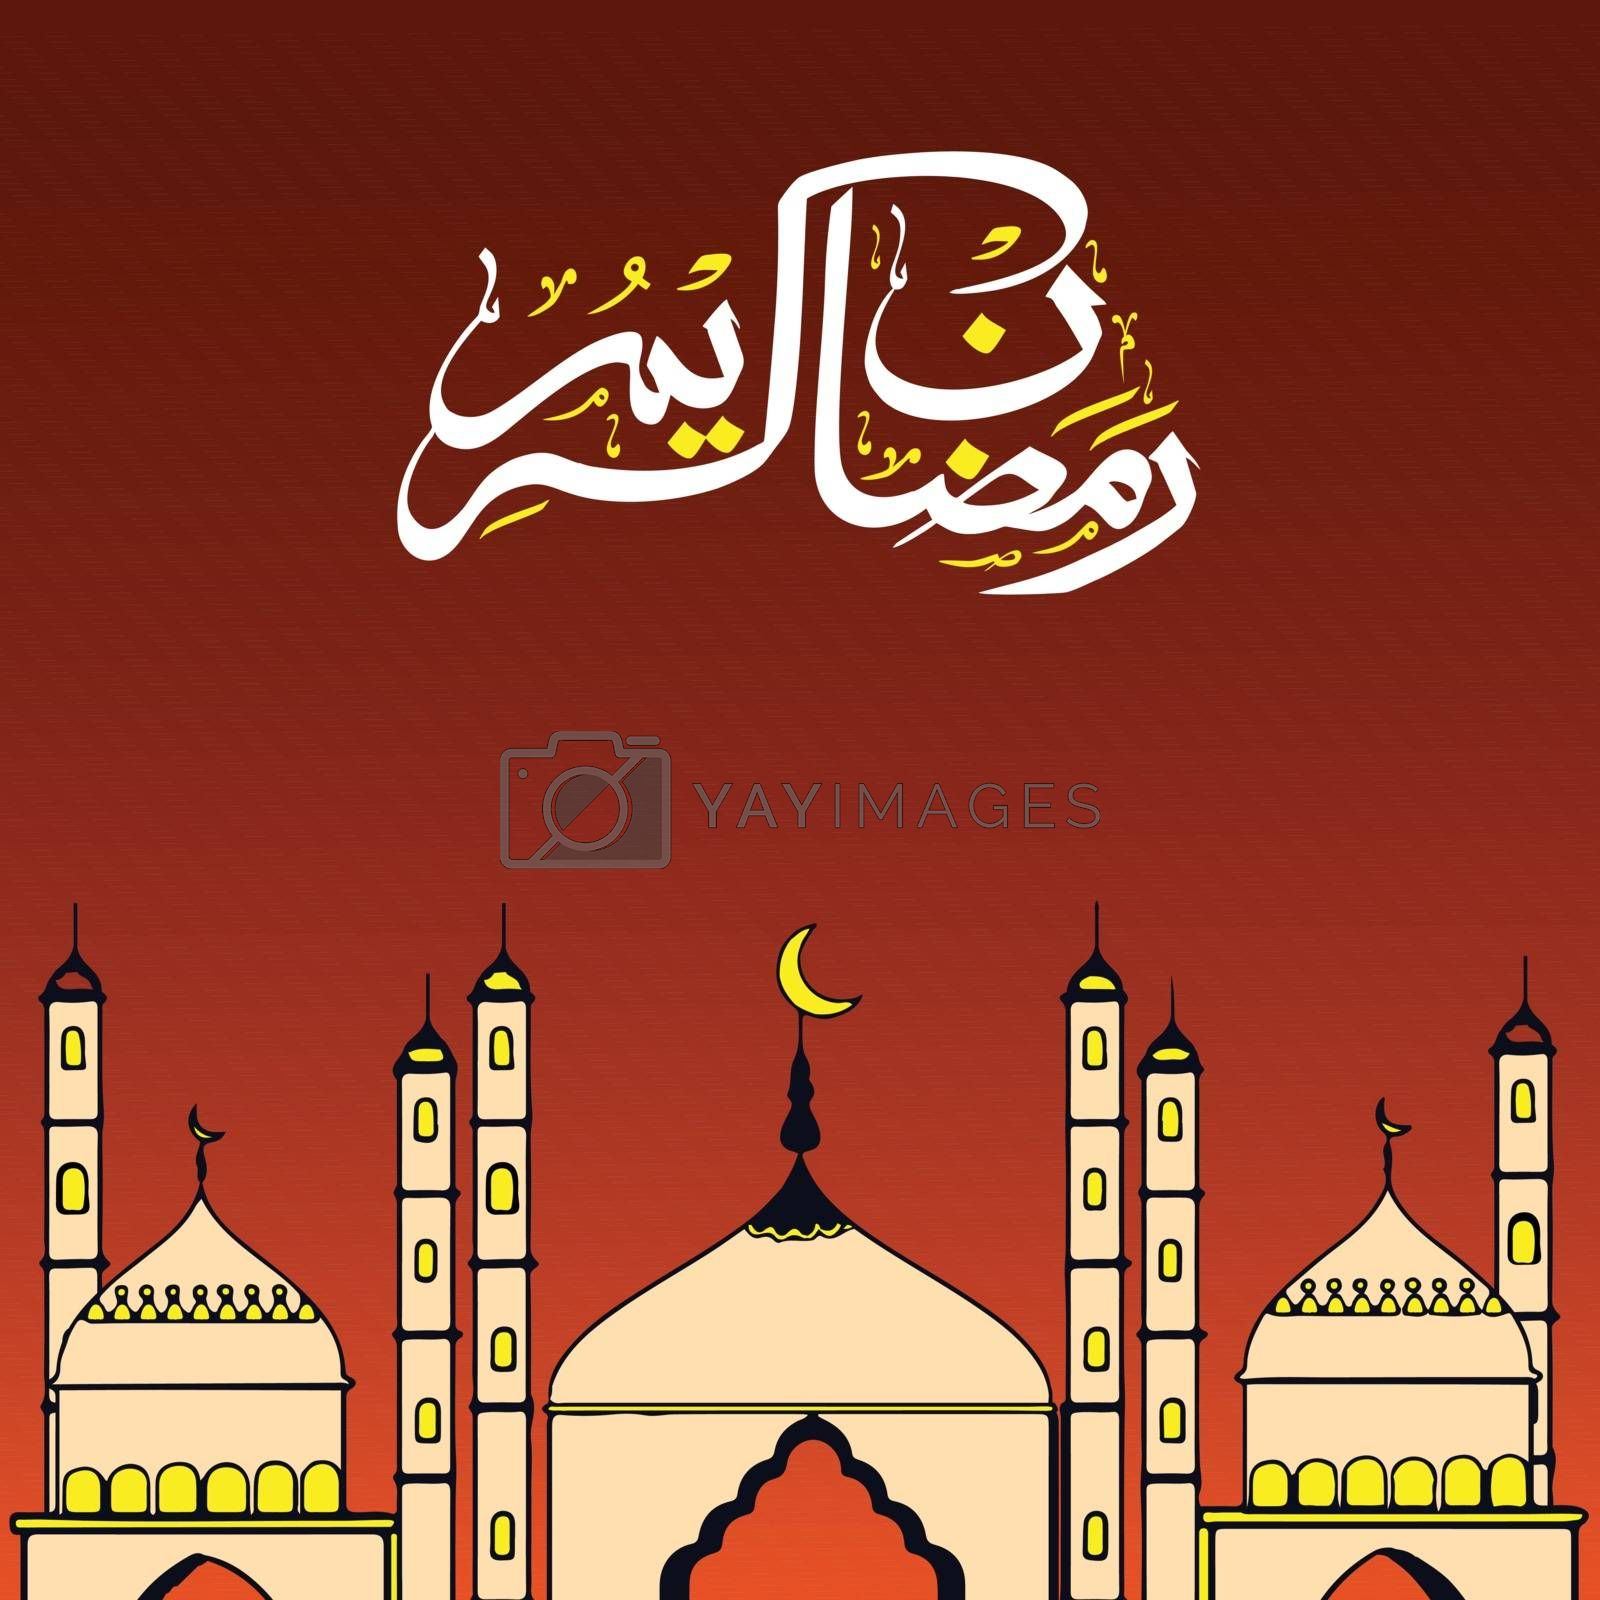 Greeting Card with Mosque, Arabic Text for Ramadan. by aispl